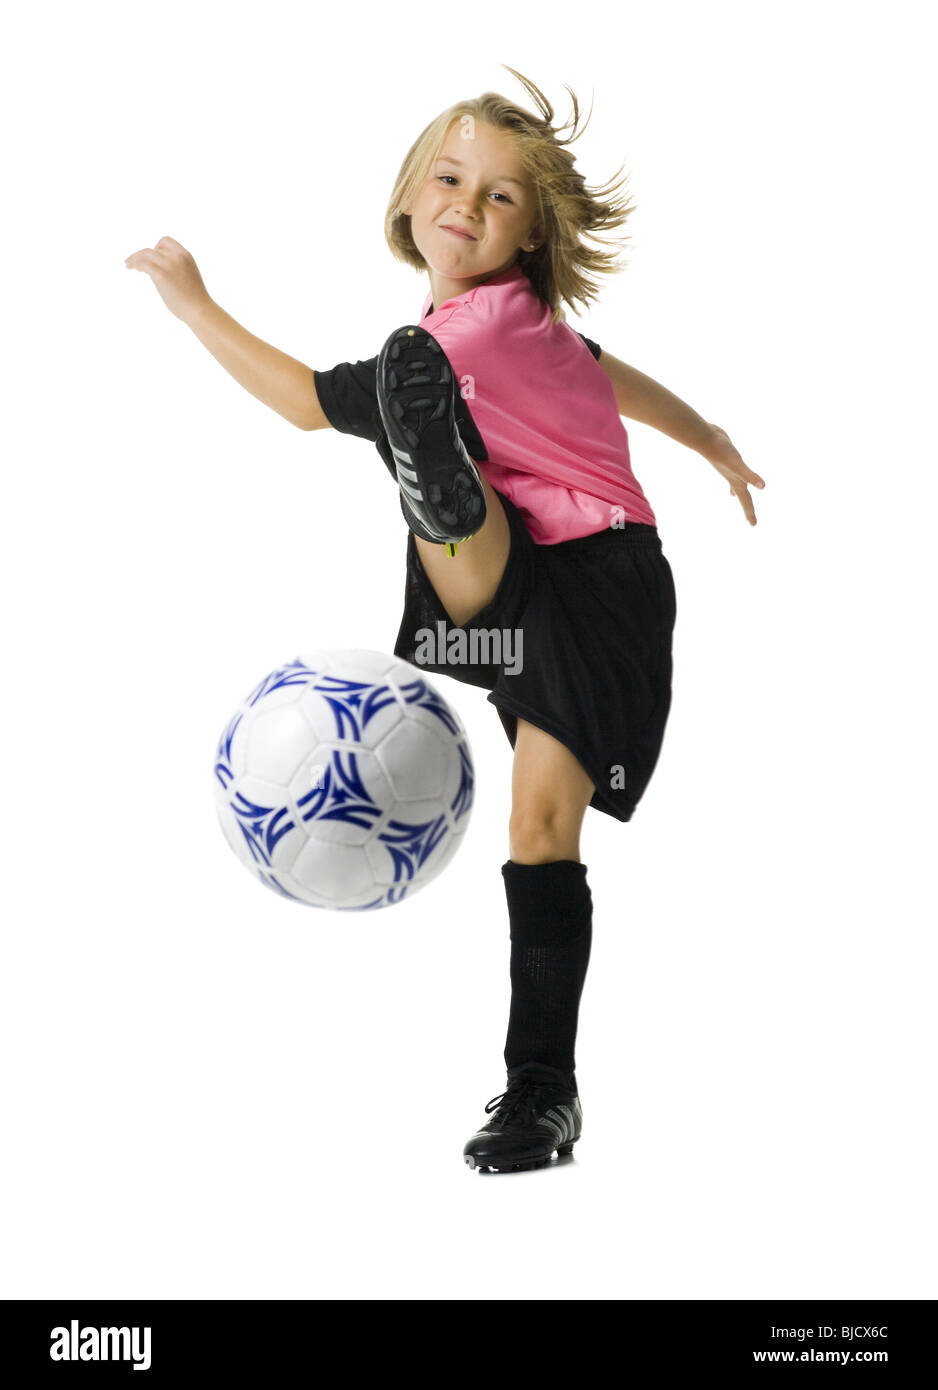 c456f2959 Young girl in a soccer uniform with ball Stock Photo  28558164 - Alamy